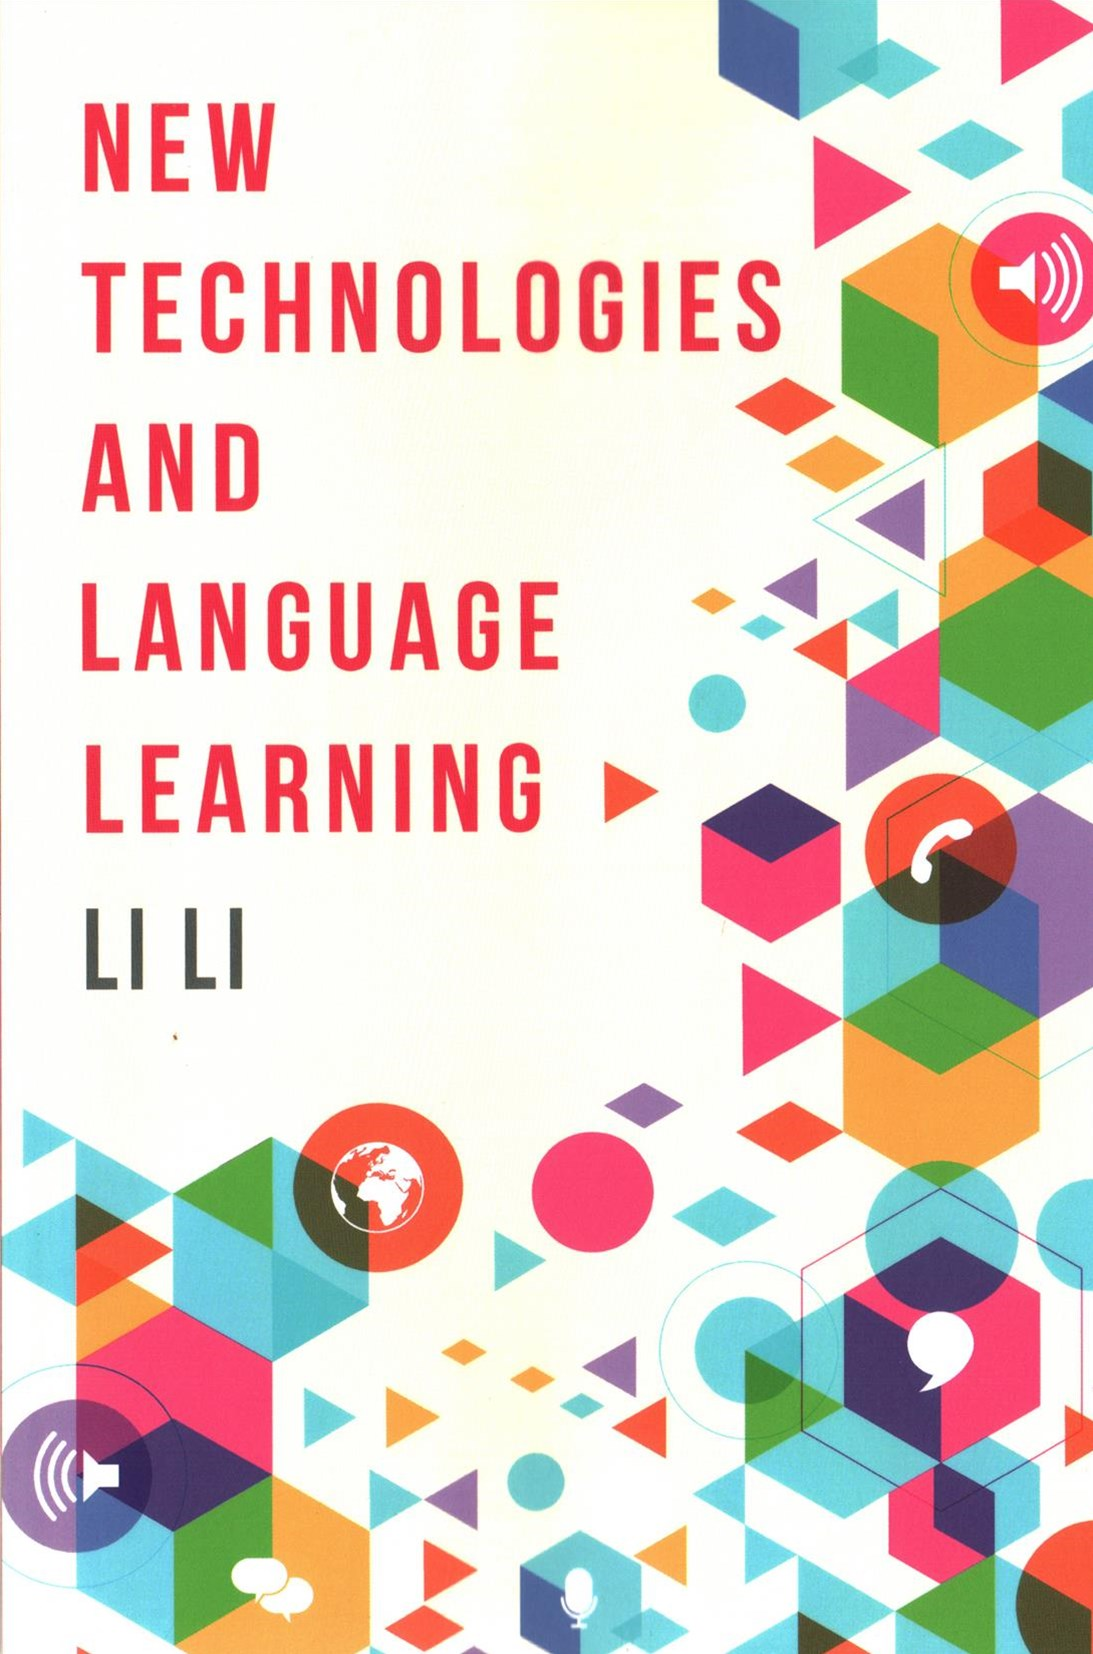 New Technologies & Language Learning